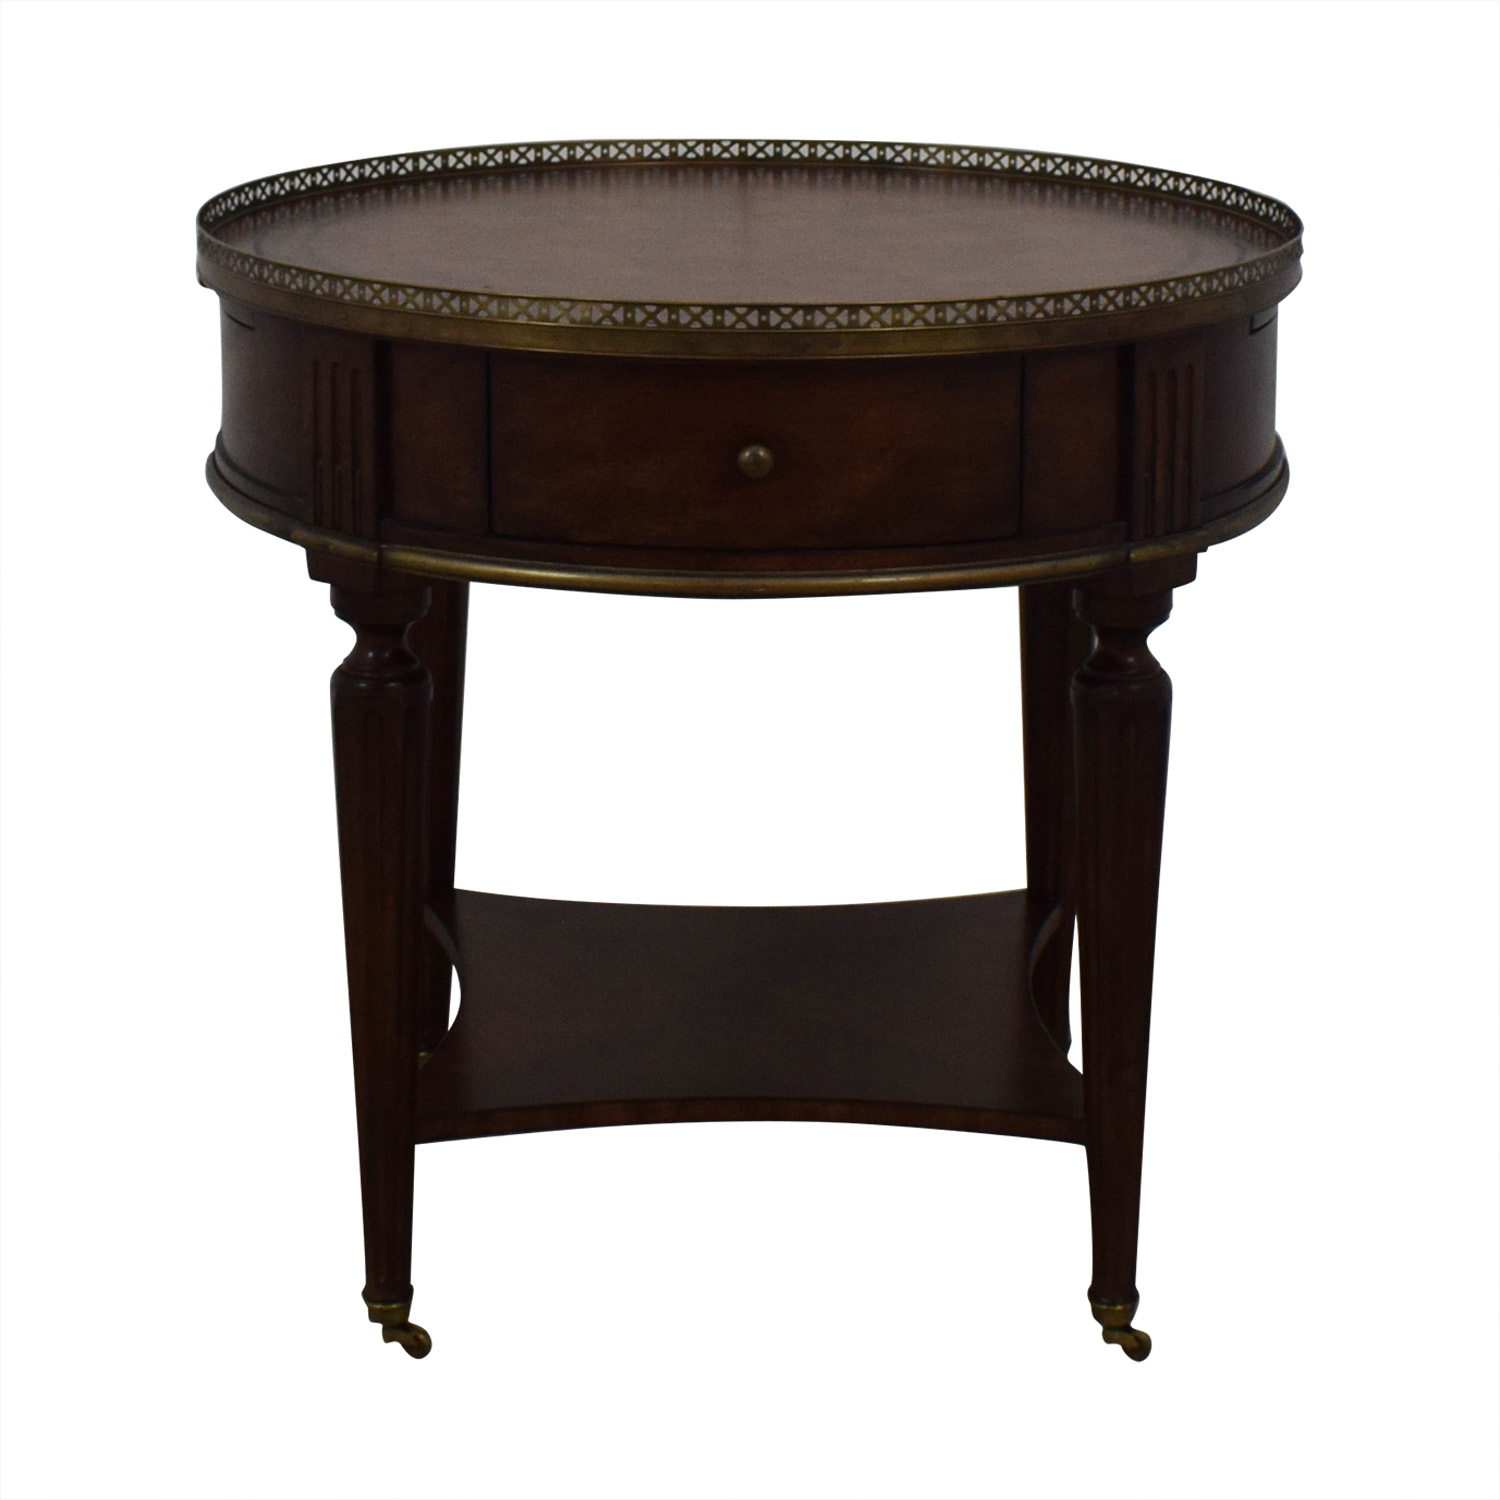 John Richard John Richard European Crossroads Bouillotte Table dimensions